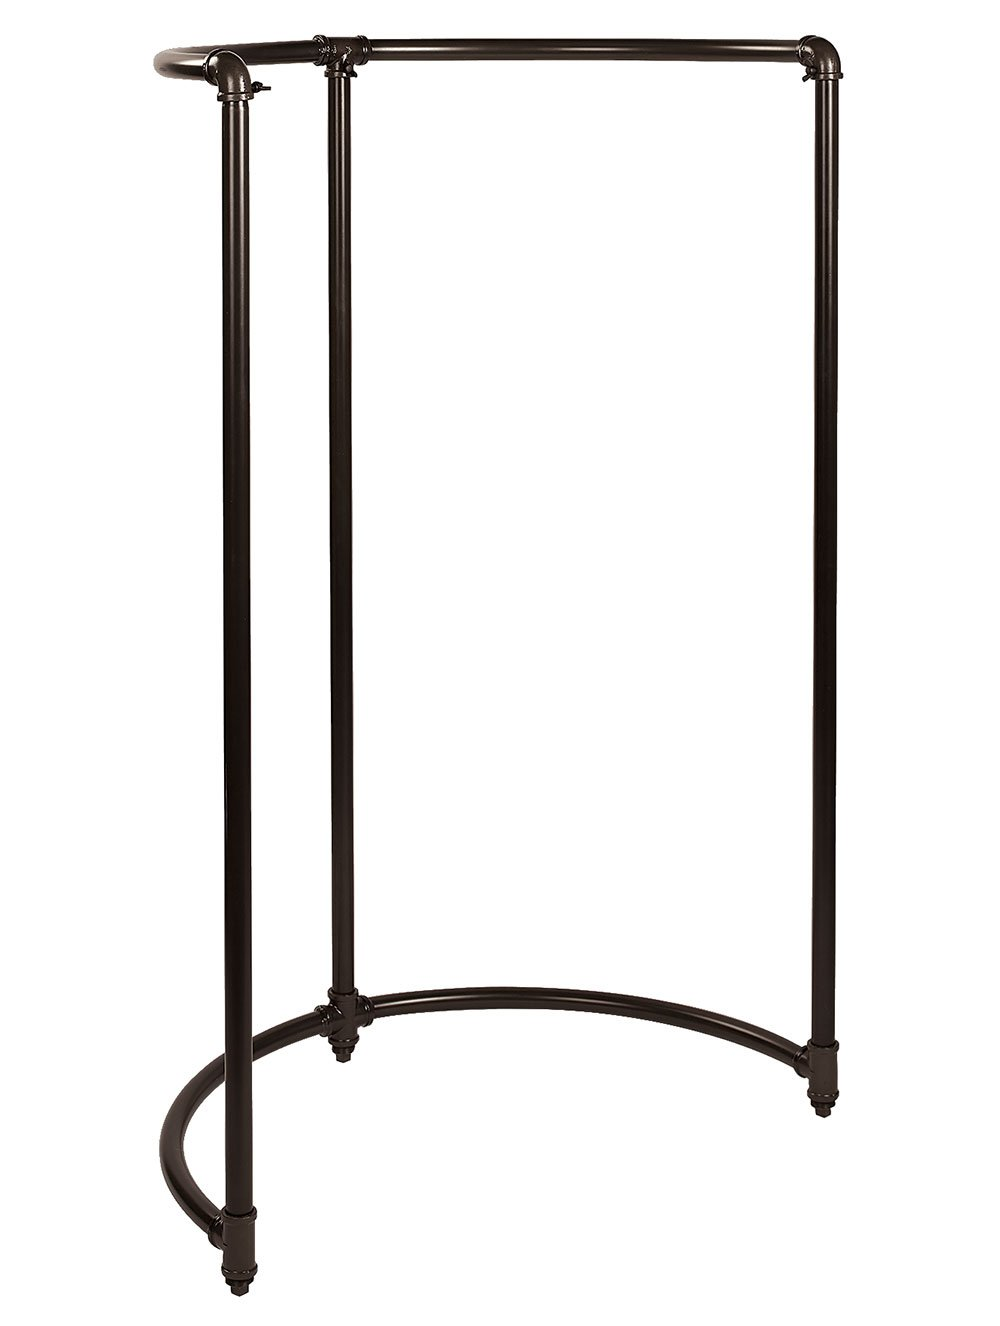 SSWBasics Boutique Pipe Half Round Clothing Rack